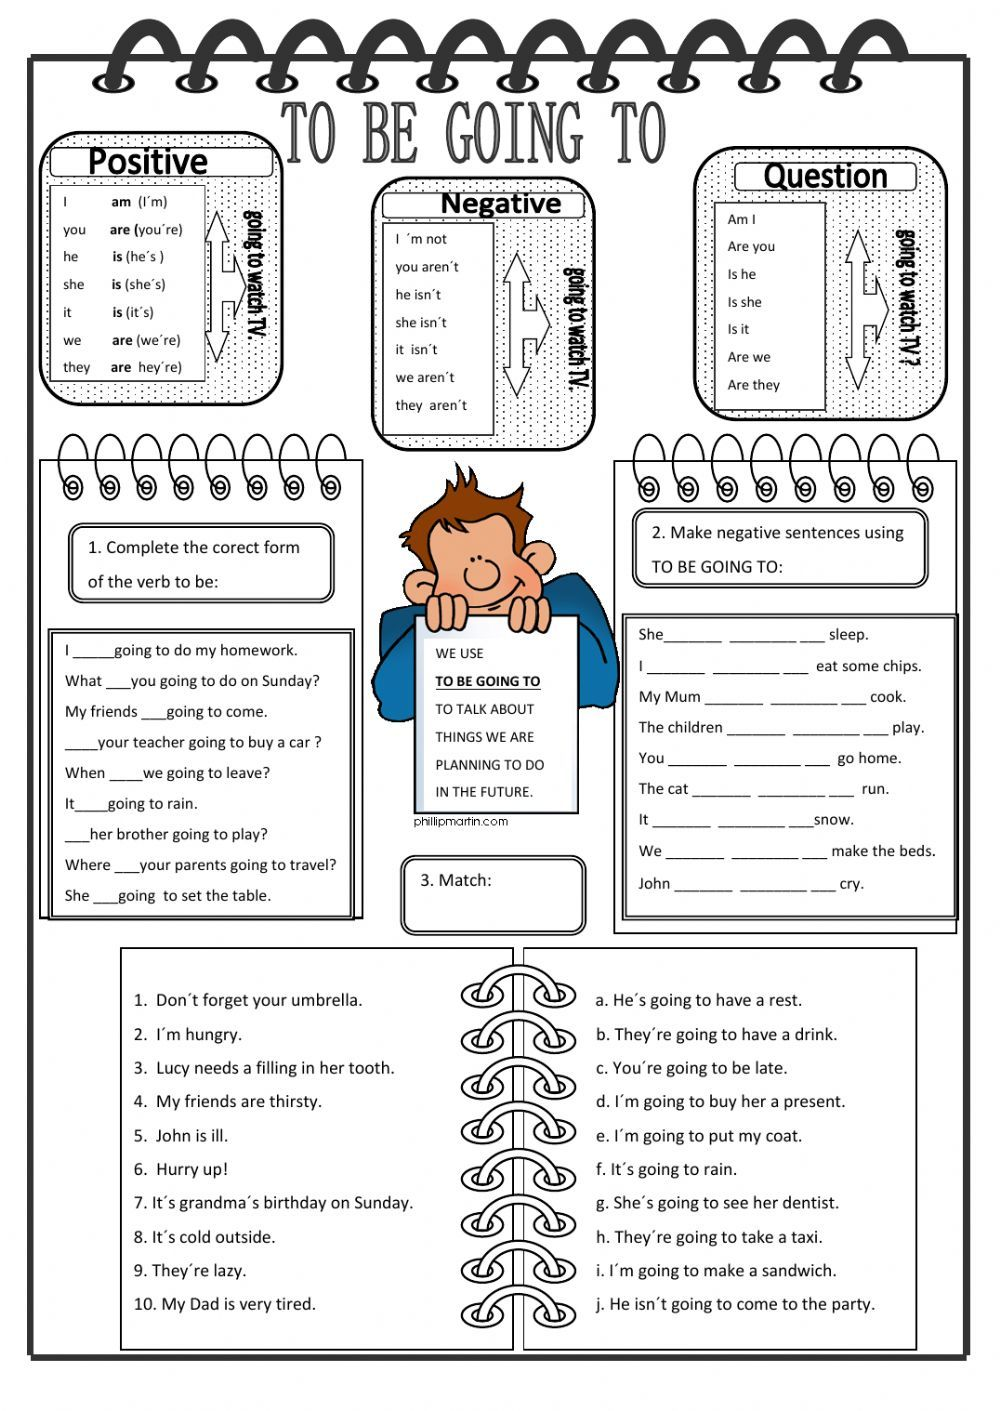 To be going to interactive and downloadable worksheet. You